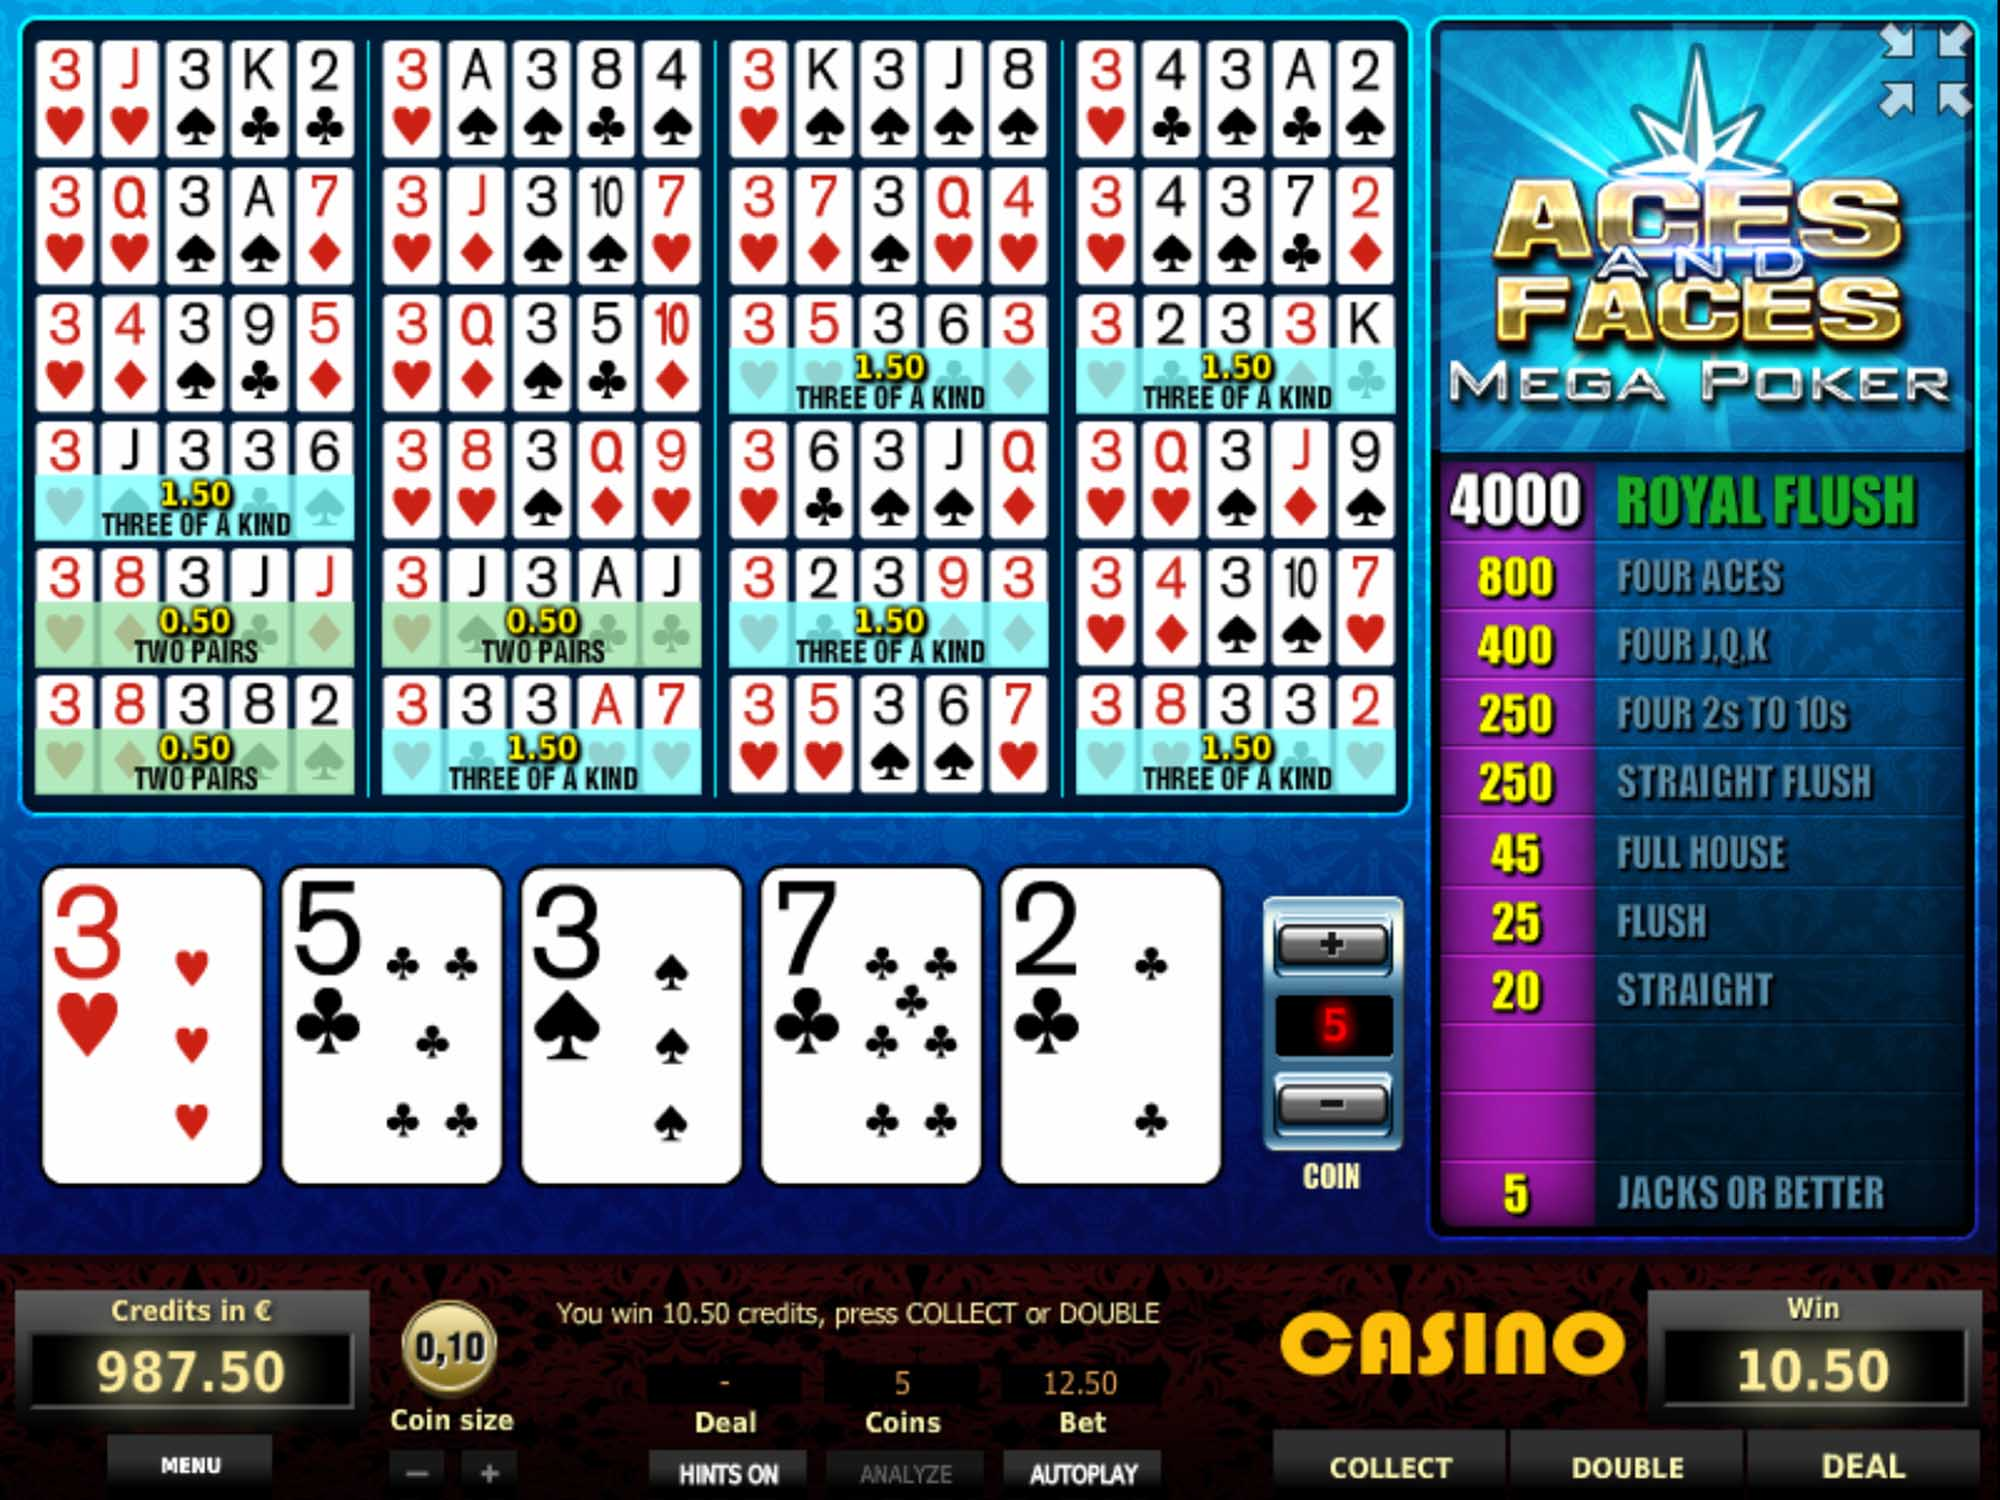 Tom Horn Aces And Faces Mega Poker Video Poker screenshot